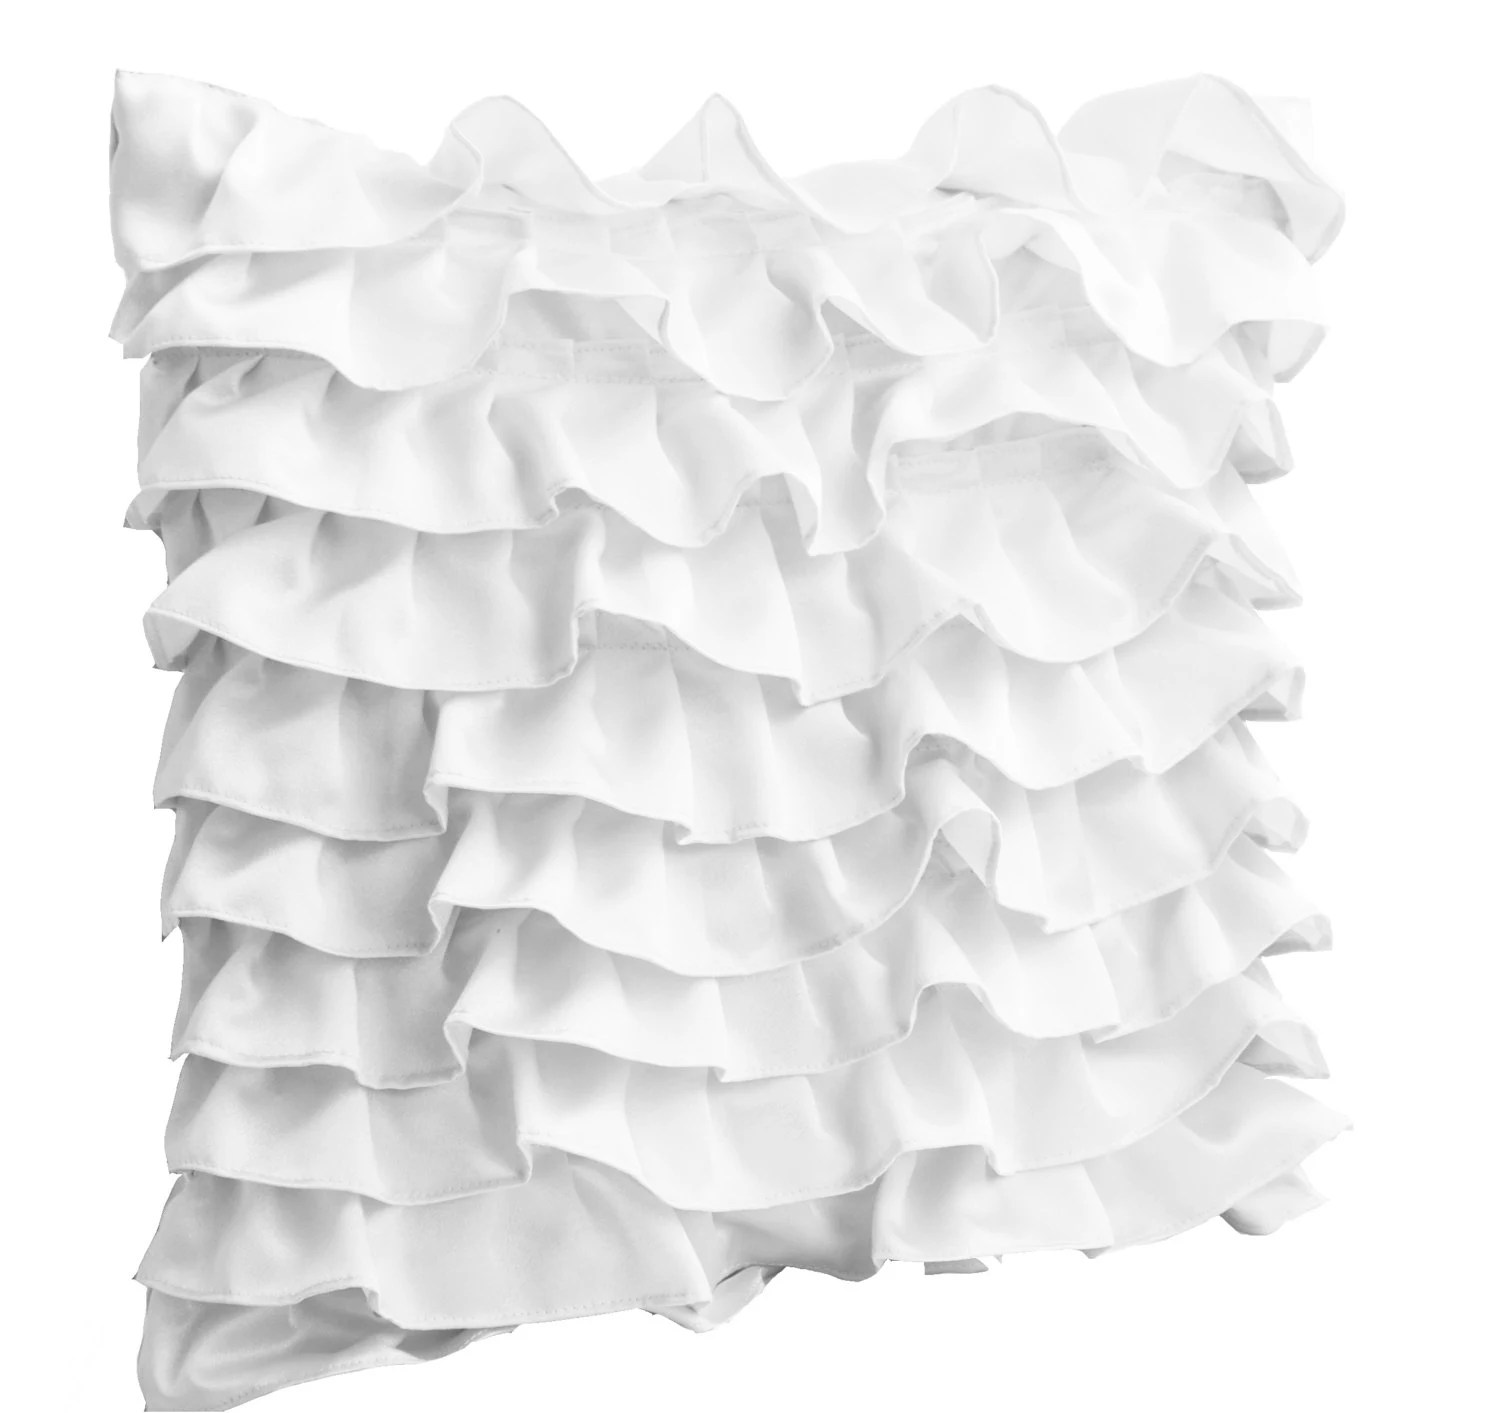 Decorative pillow in White Satin Ruffles Bed pillow cover